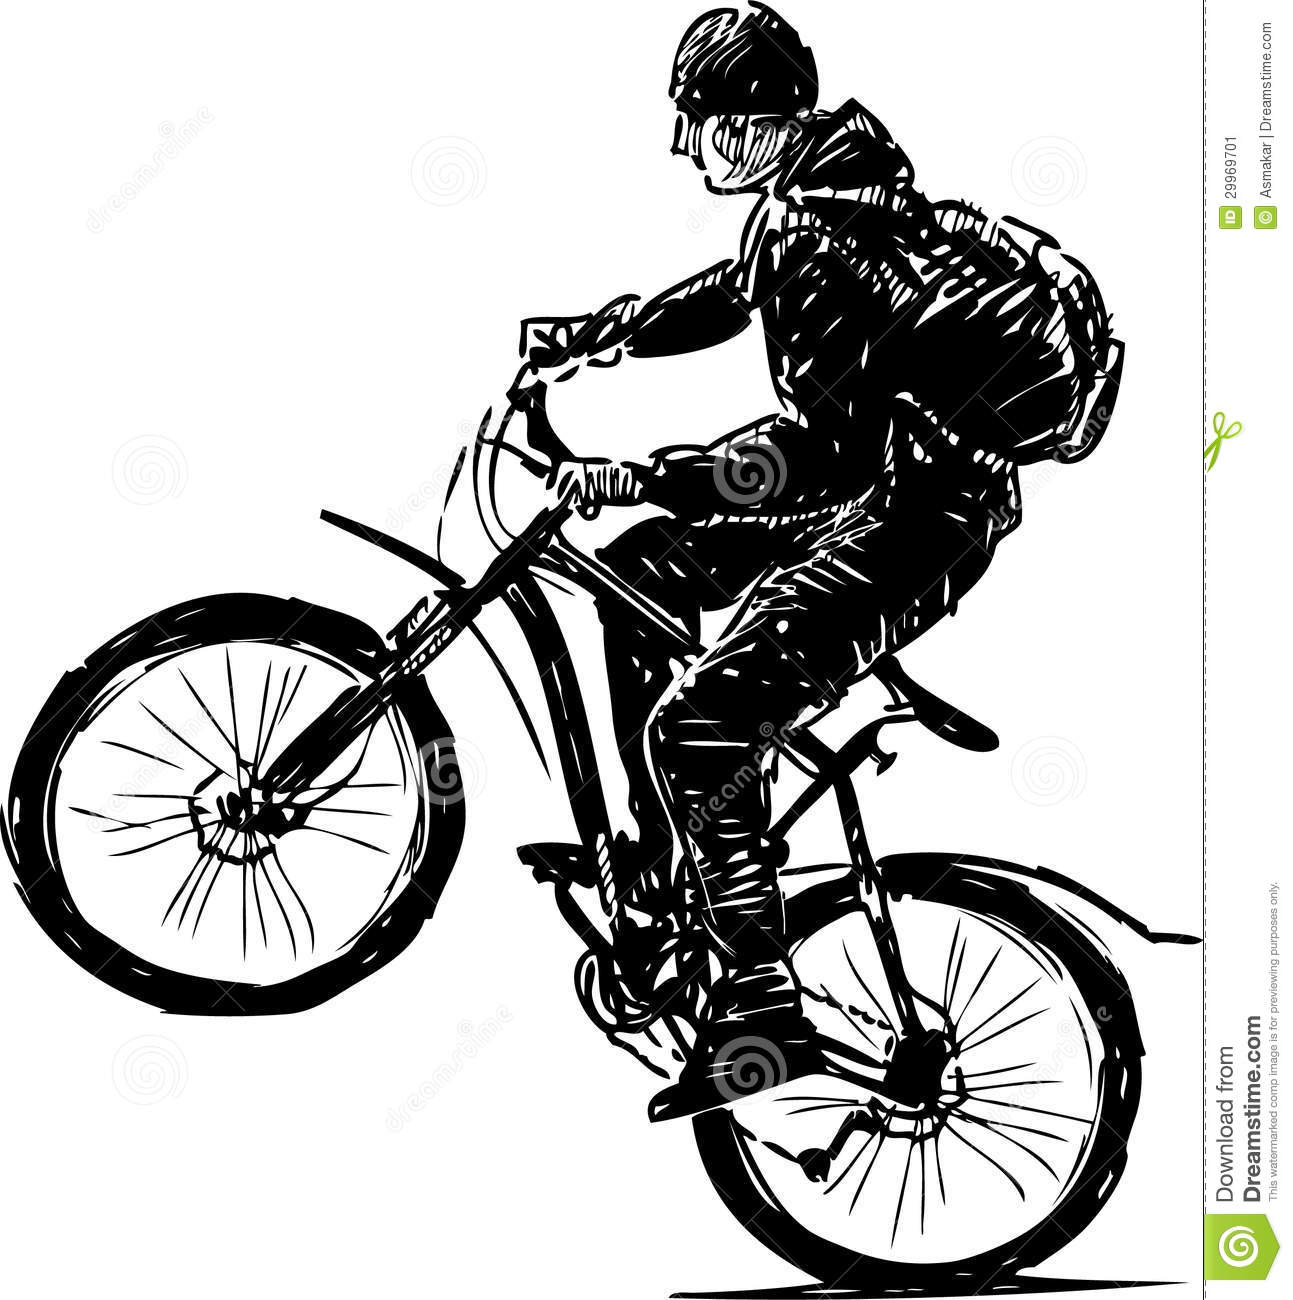 Cycliste image stock image 29969701 - Cycliste dessin ...